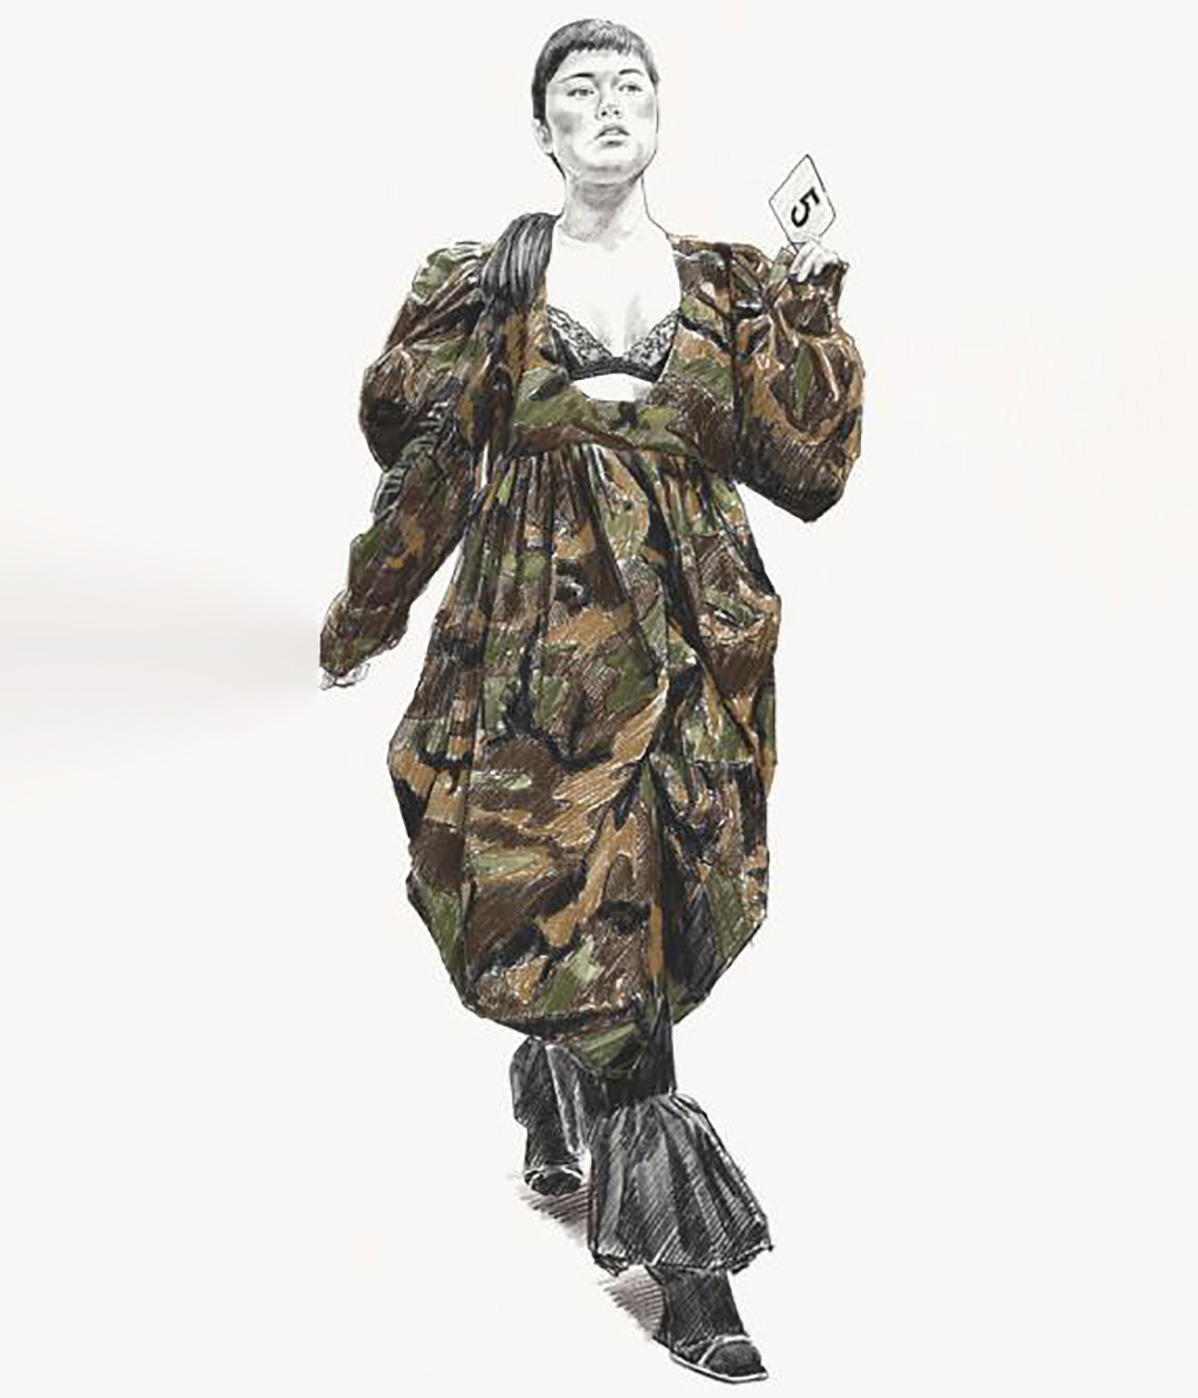 Vaquera A/W 2020 illustration